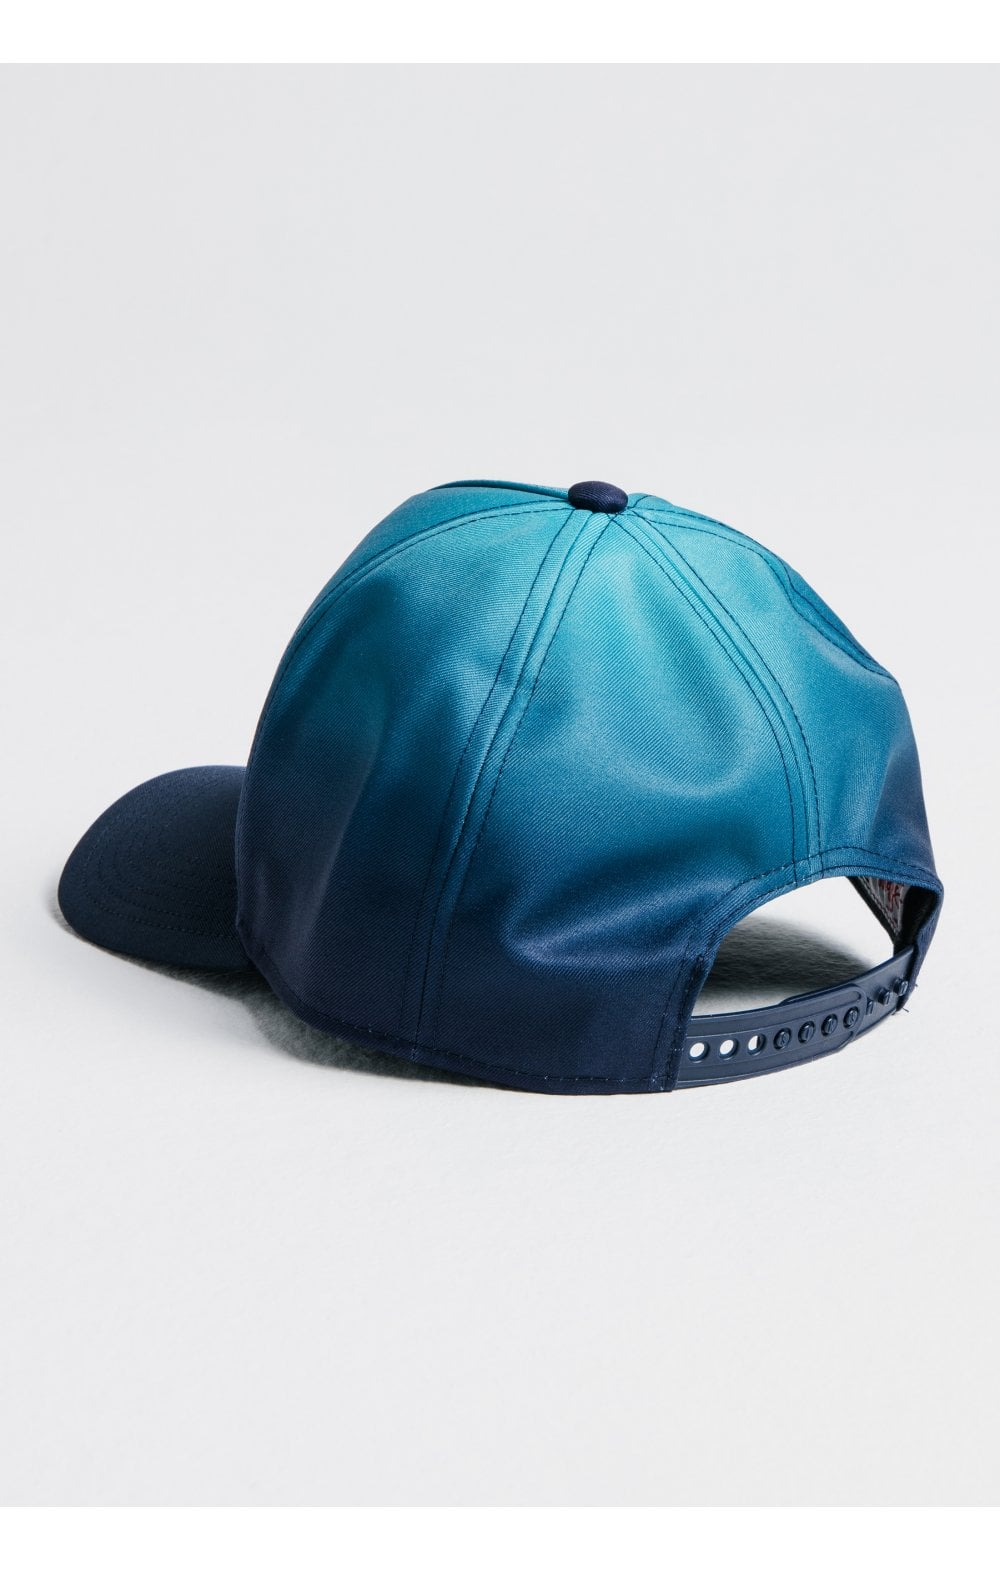 SikSilk Full Fade Trucker - Teal & Blue (1)